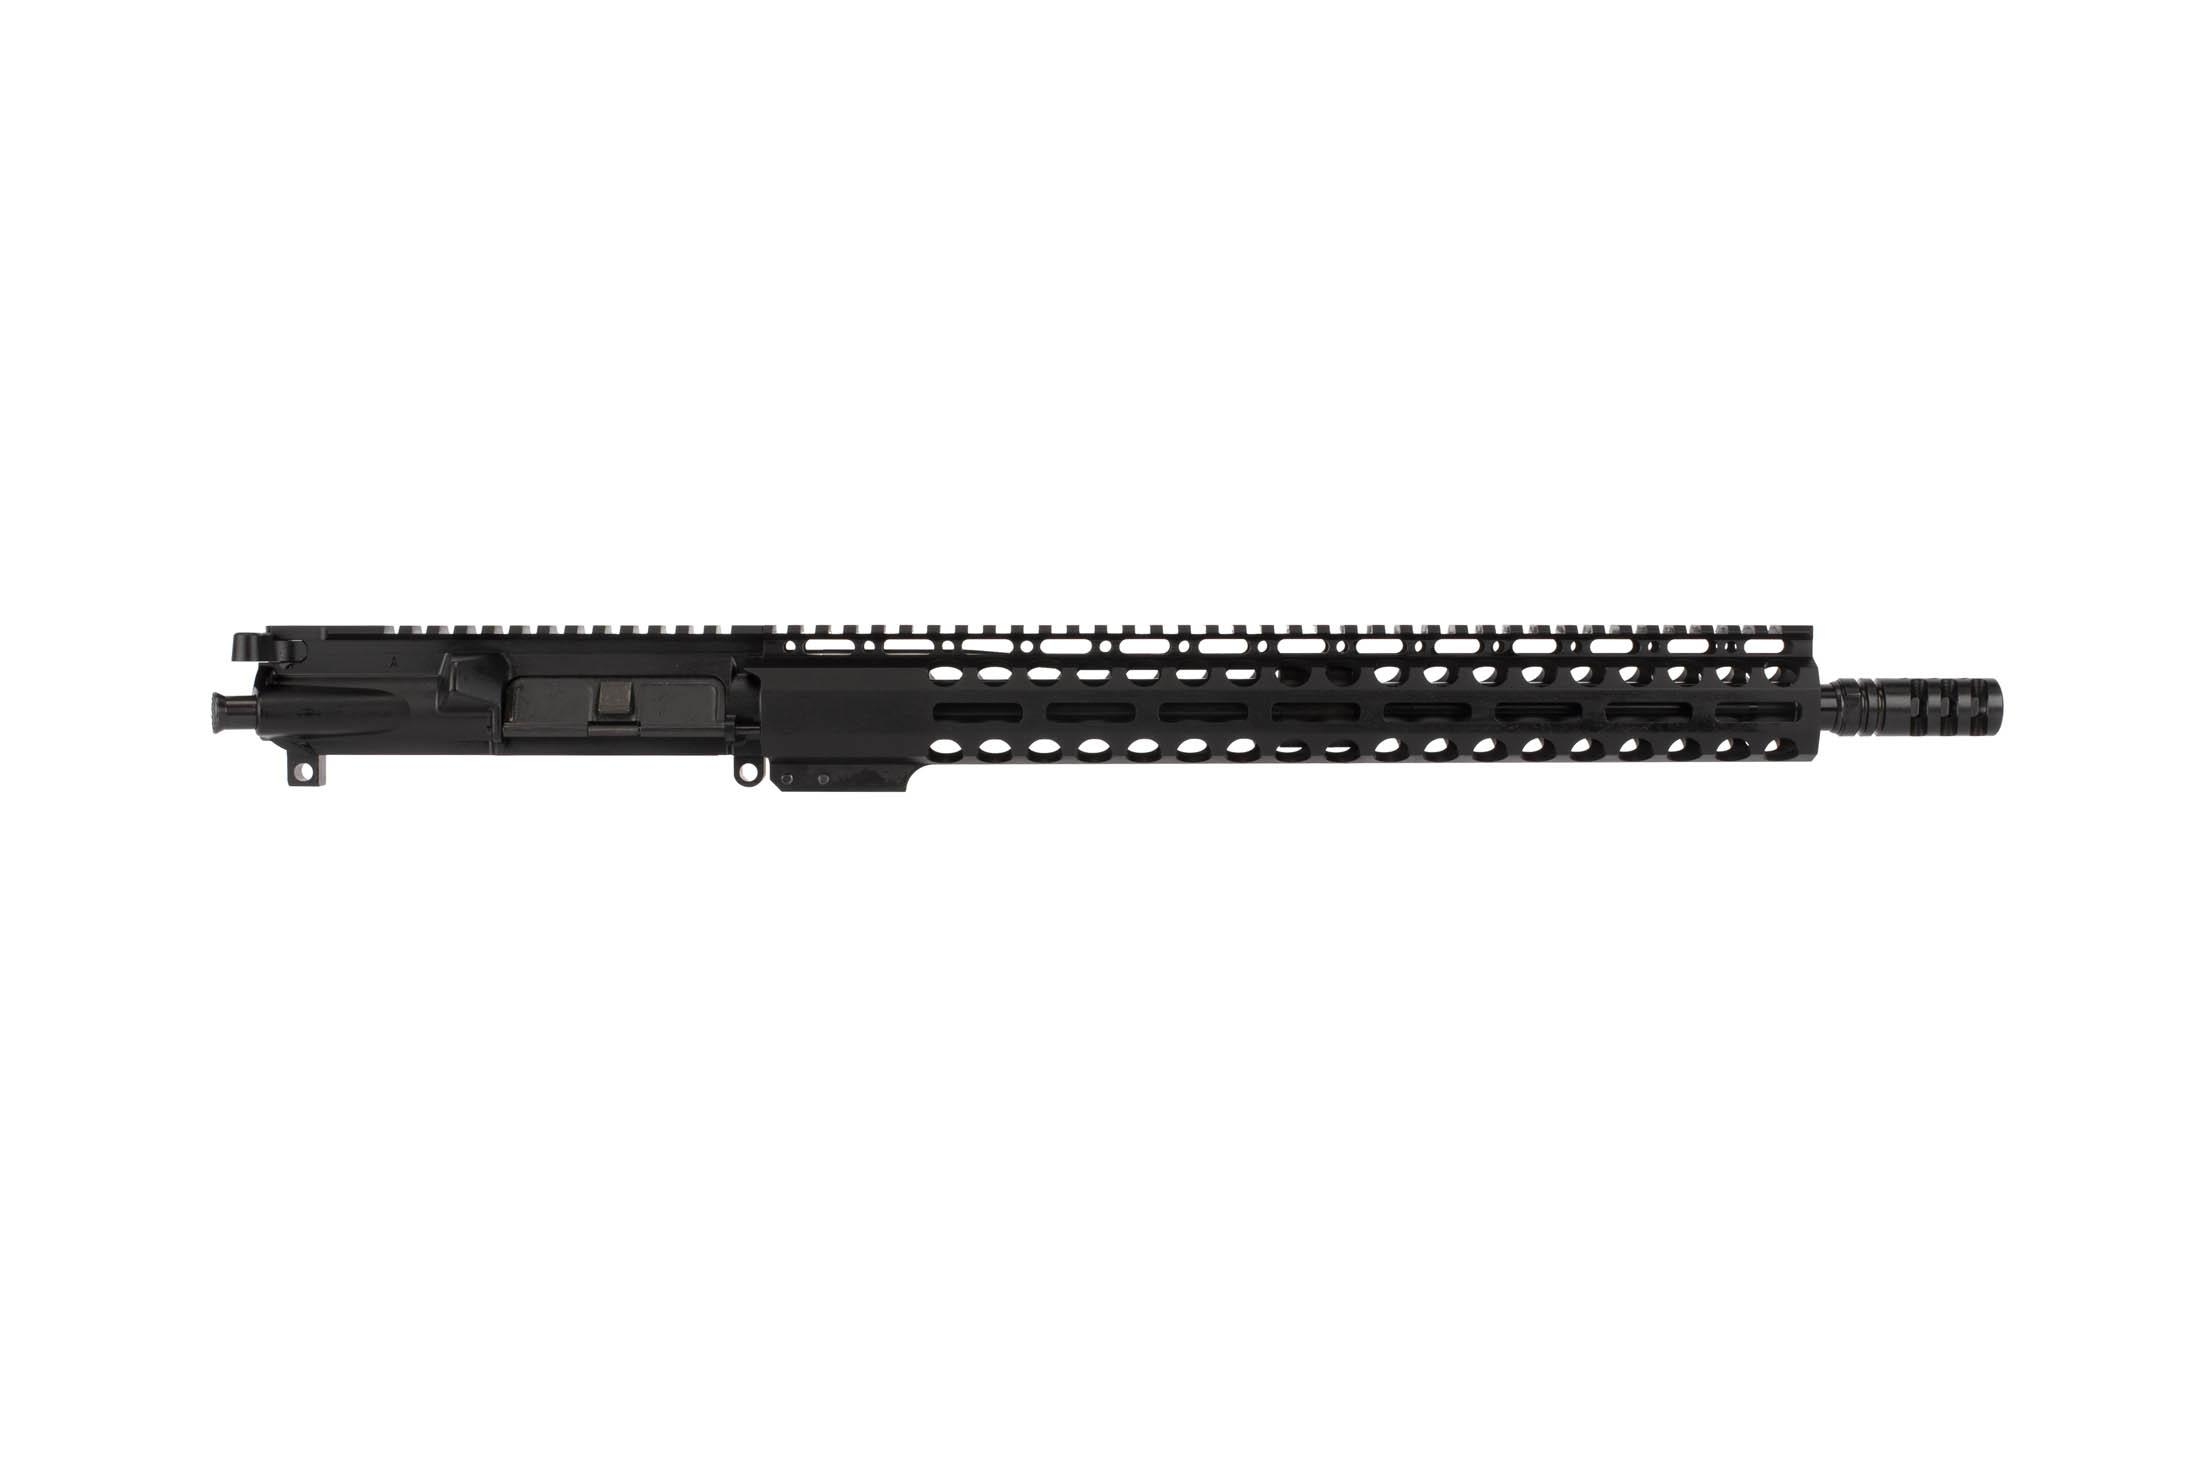 Exclusive 15in M-LOK handguard on Radical Firearms 16in 7.62x39mm complete AR-15 upper with carbine gas system